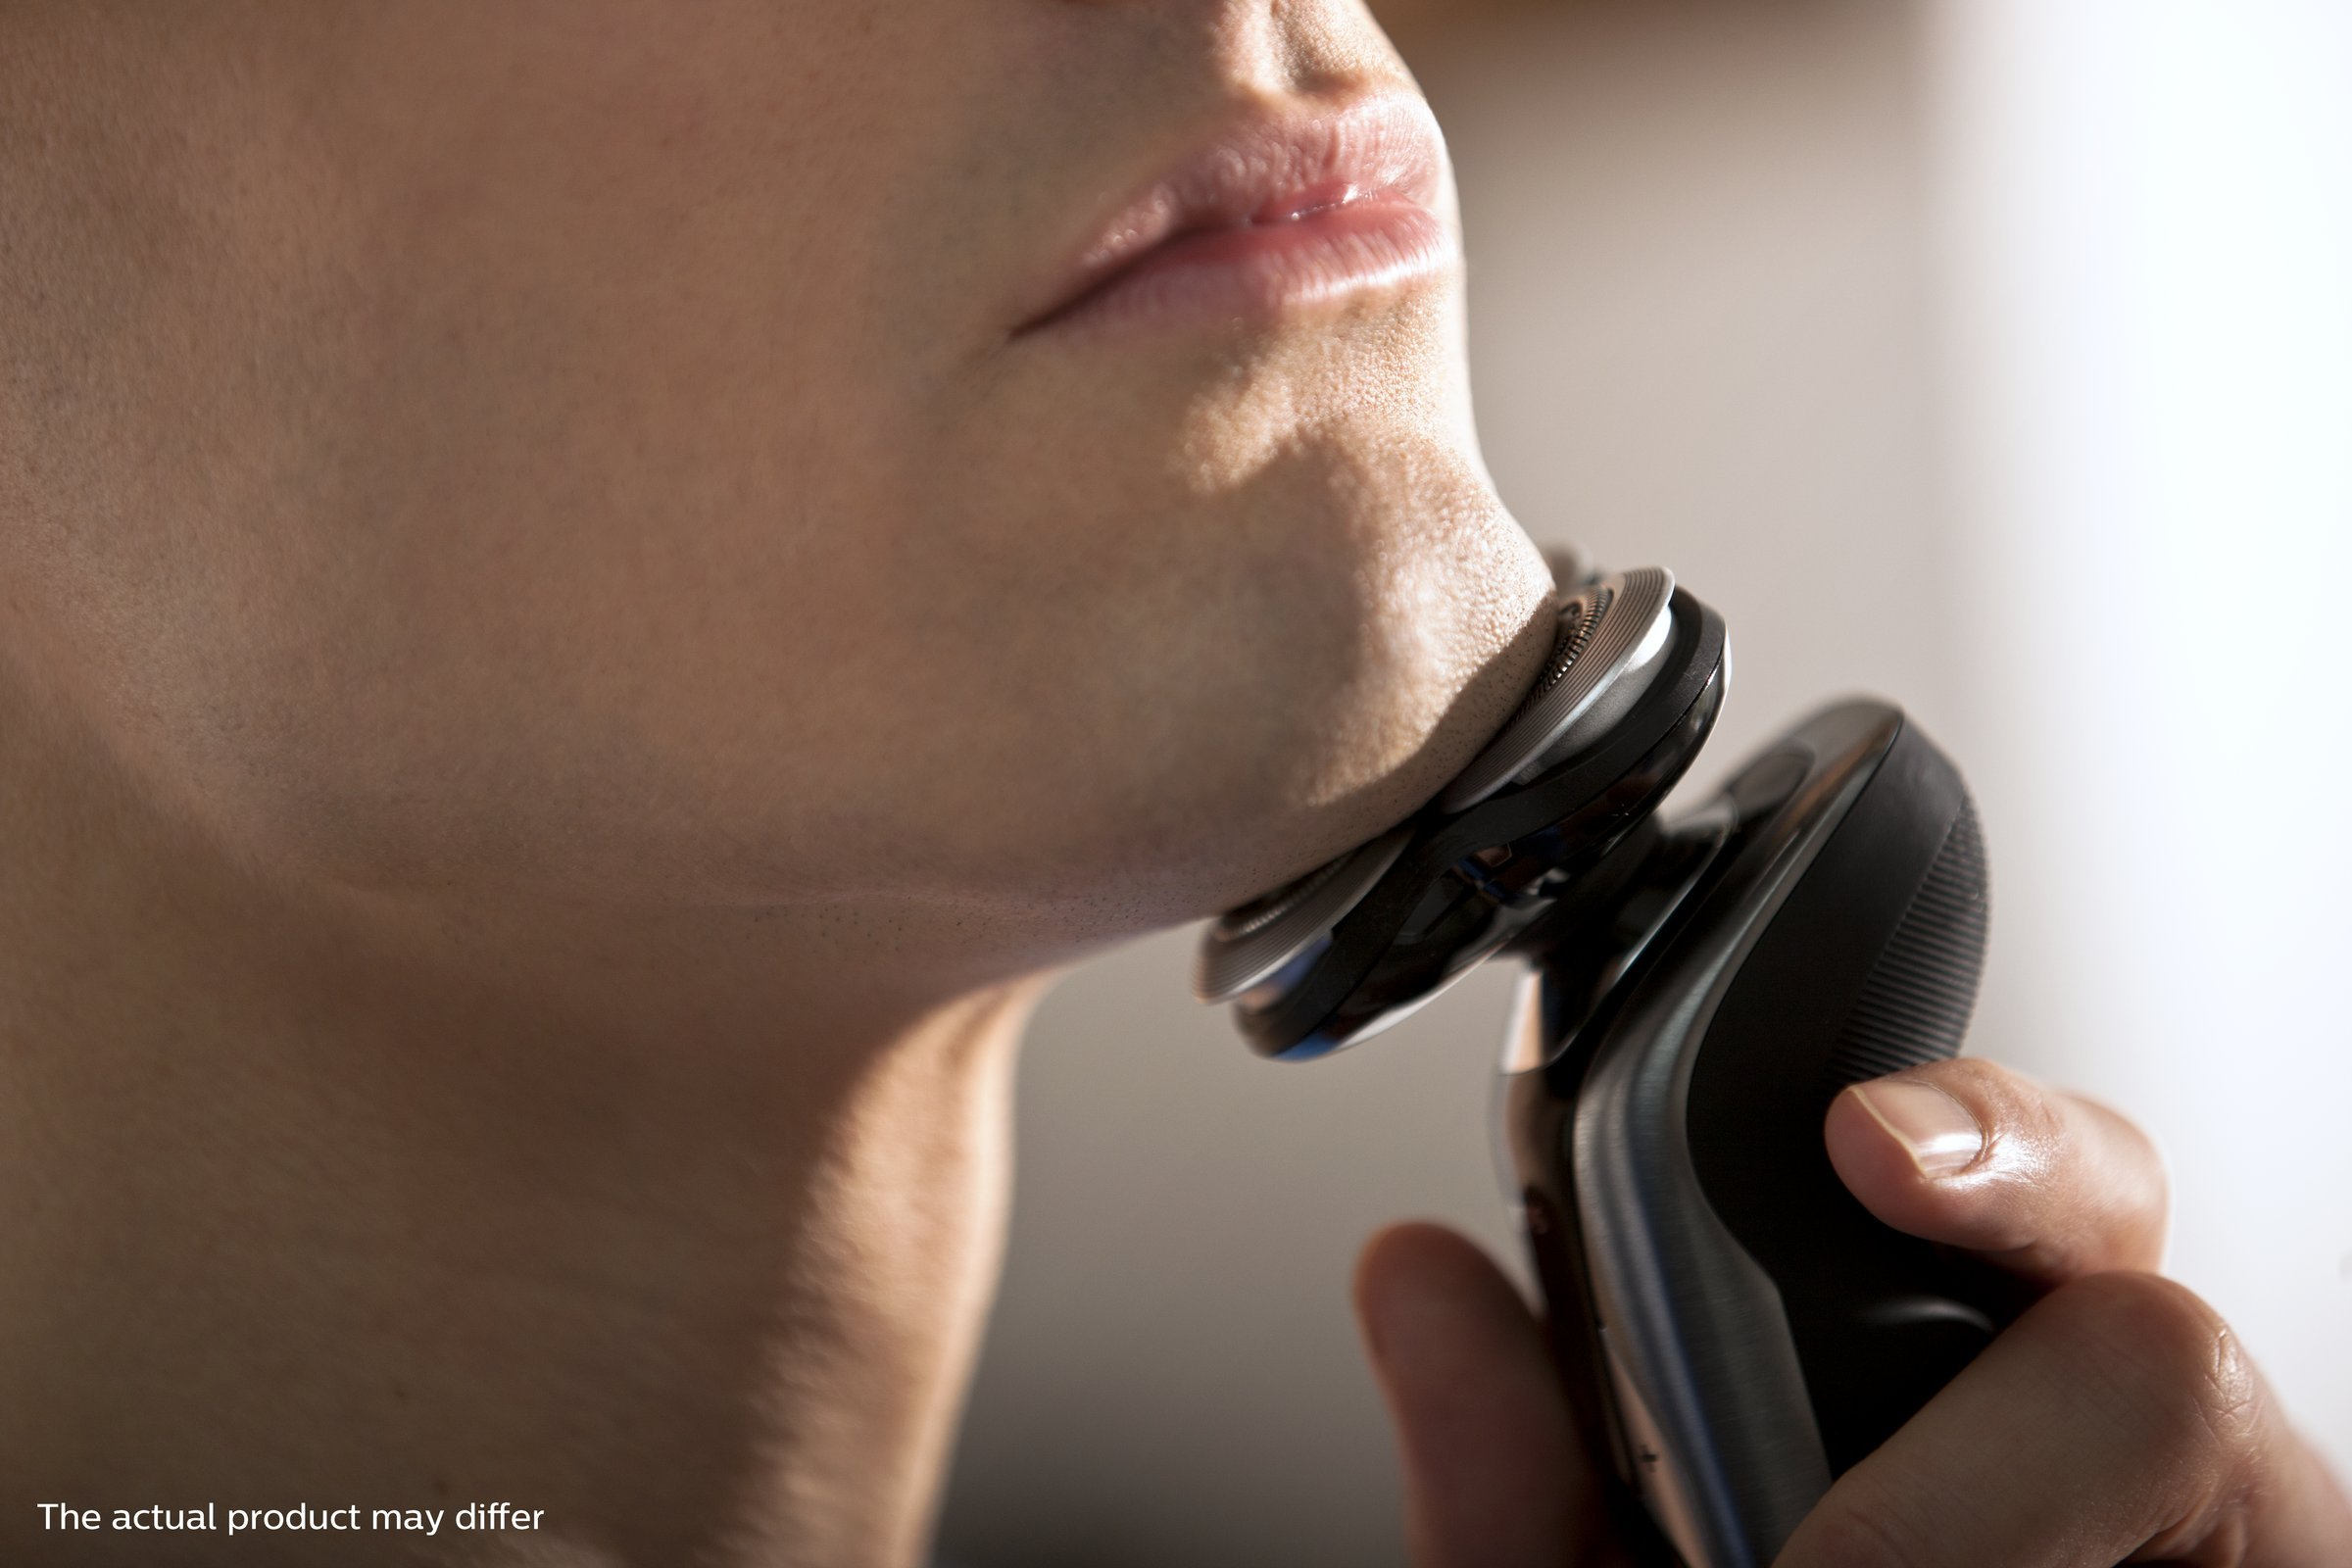 Philips Norelco S9311/87, Shaver 9300 by Philips Norelco (Image #10)